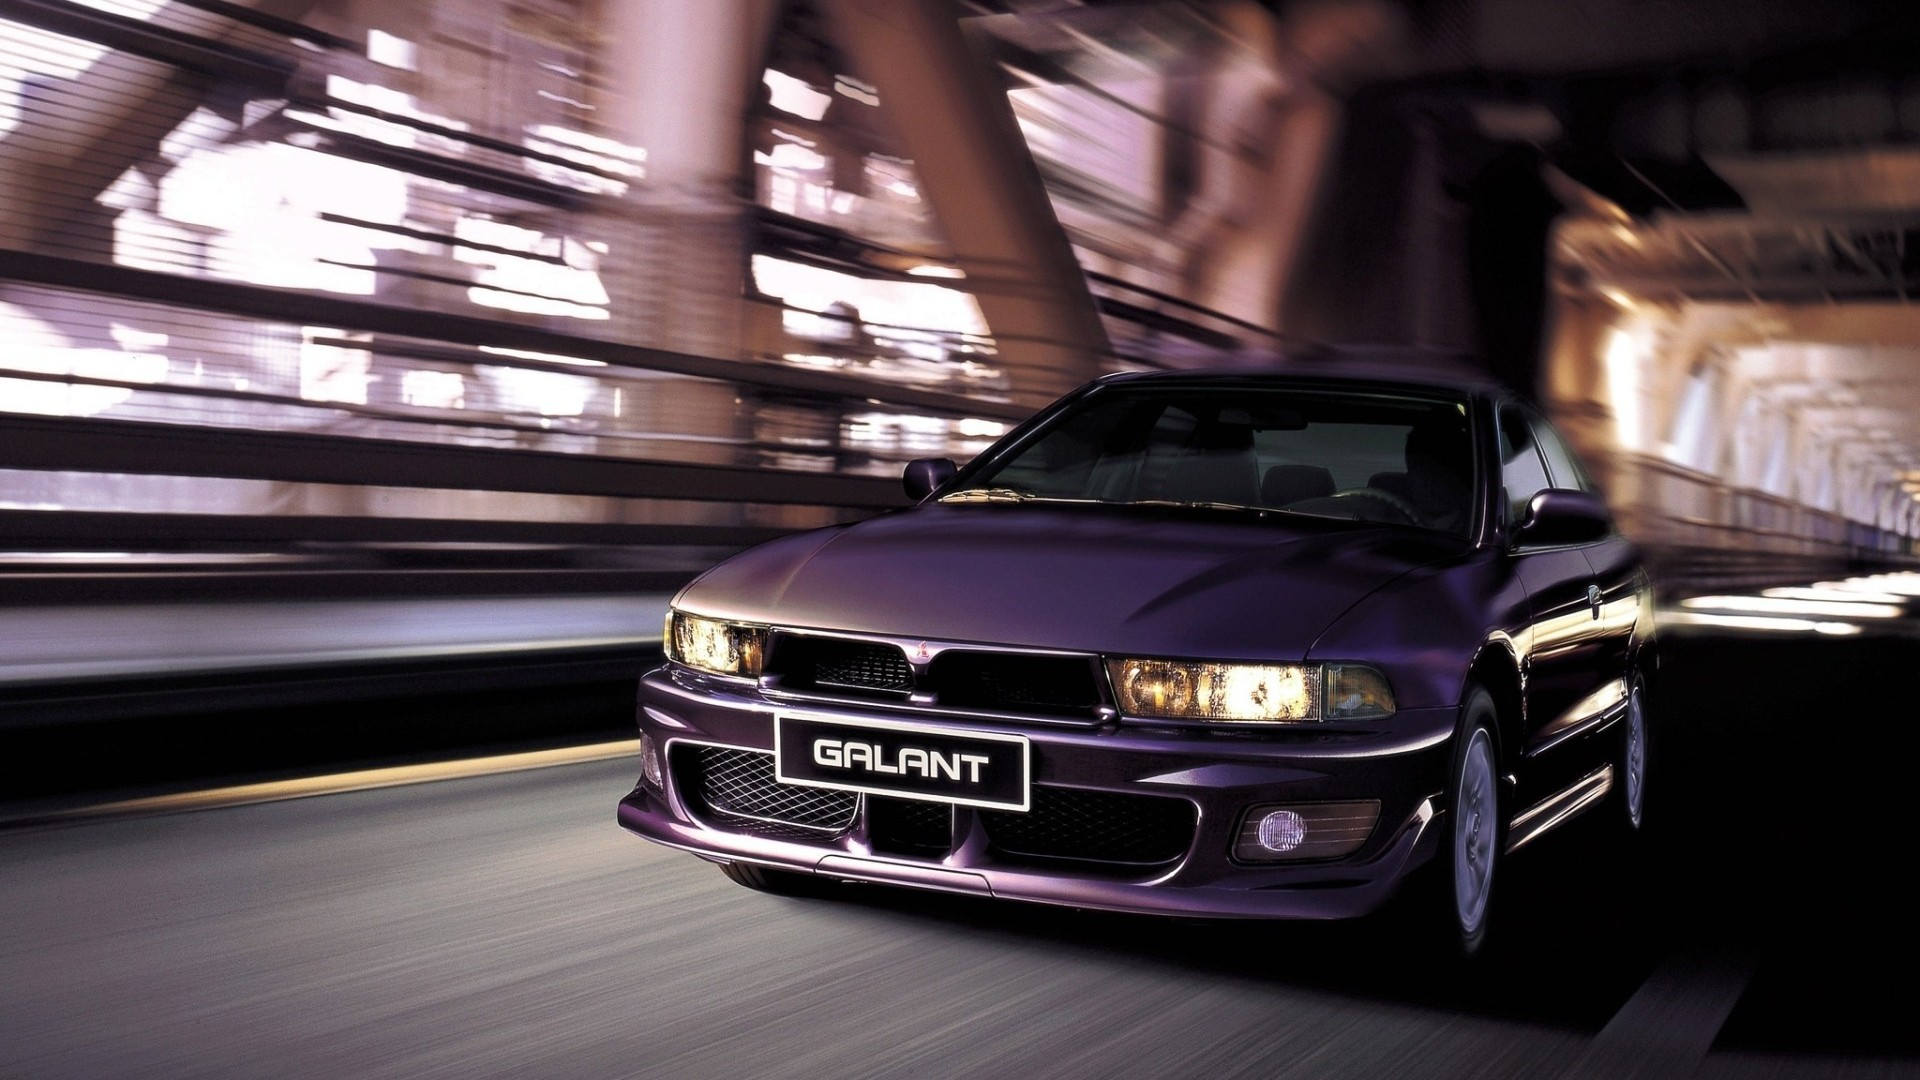 Jdm Car Wallpaper 1920x1080 Jdm Japanese Domestic Market Mitsubishi Galant Cars